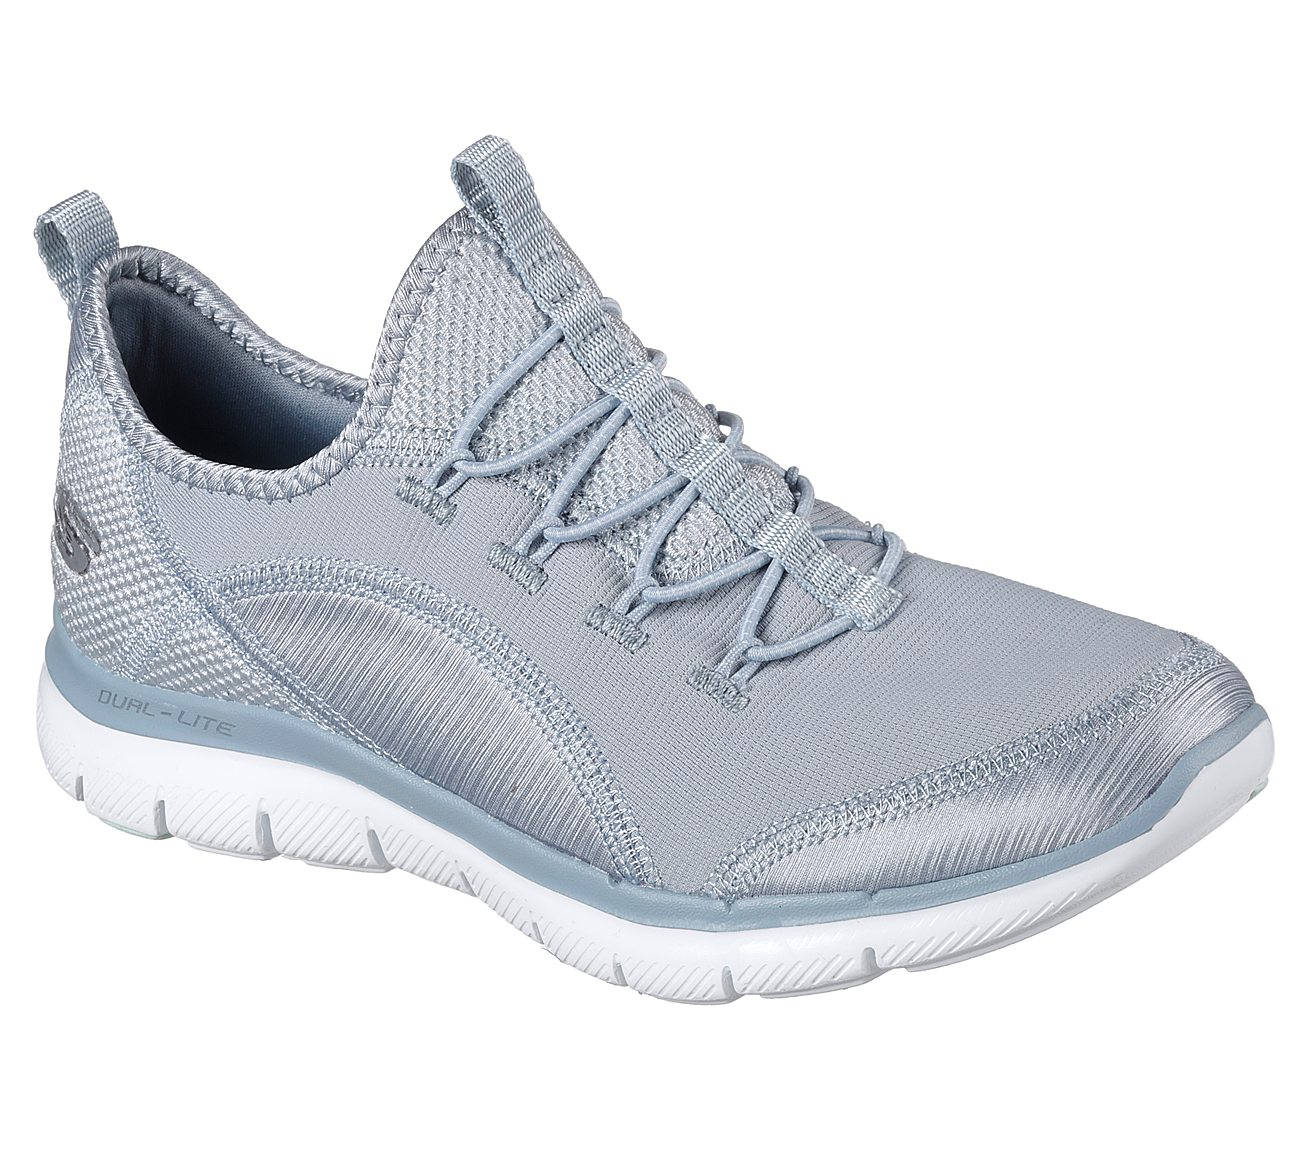 Buy SKECHERS Flex Appeal 2.0 - Mixed